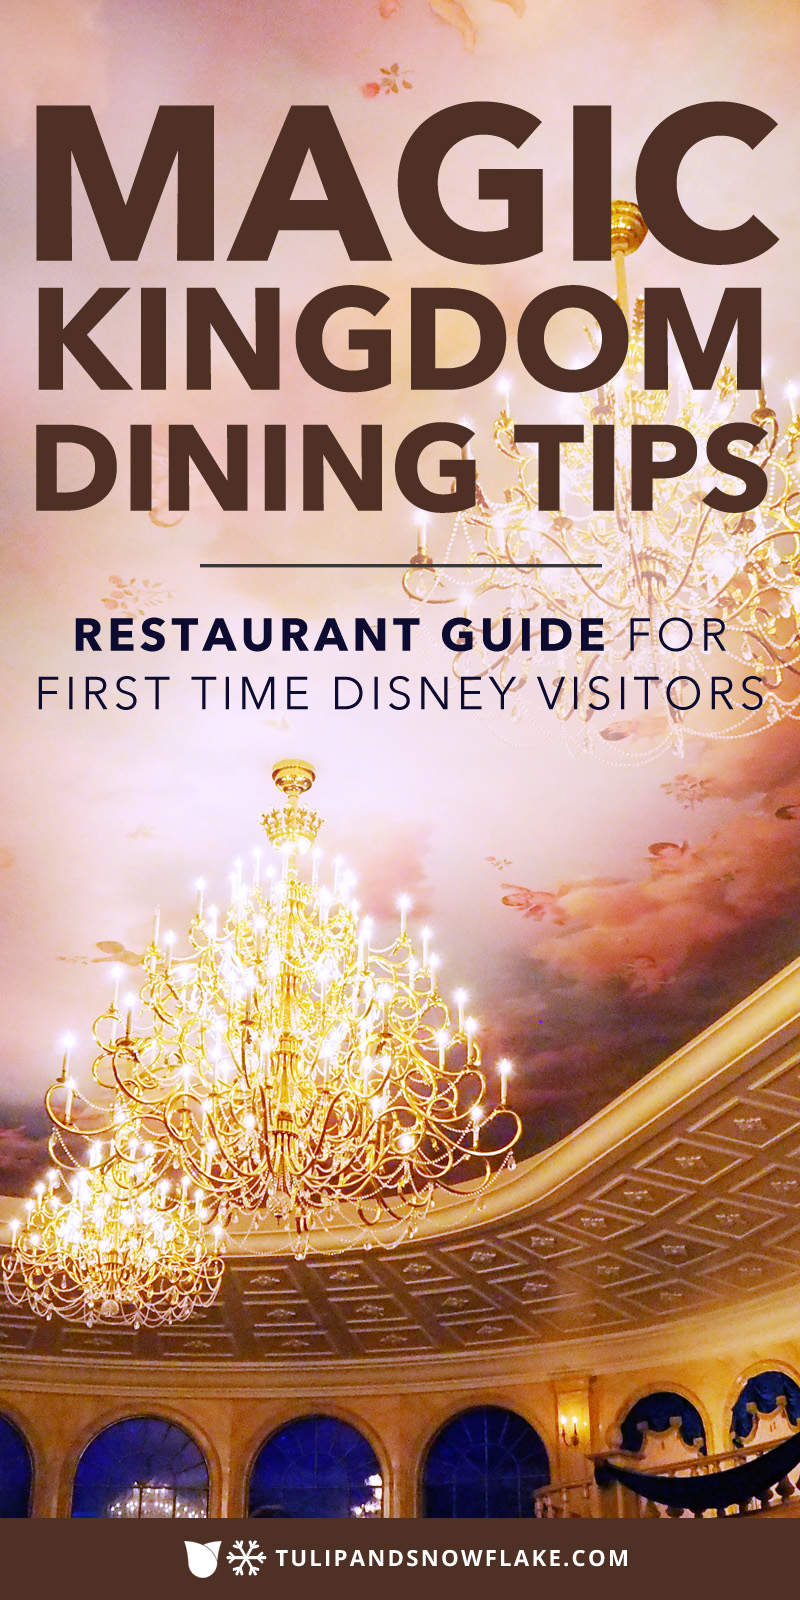 Magic Kingdom Dining Tips